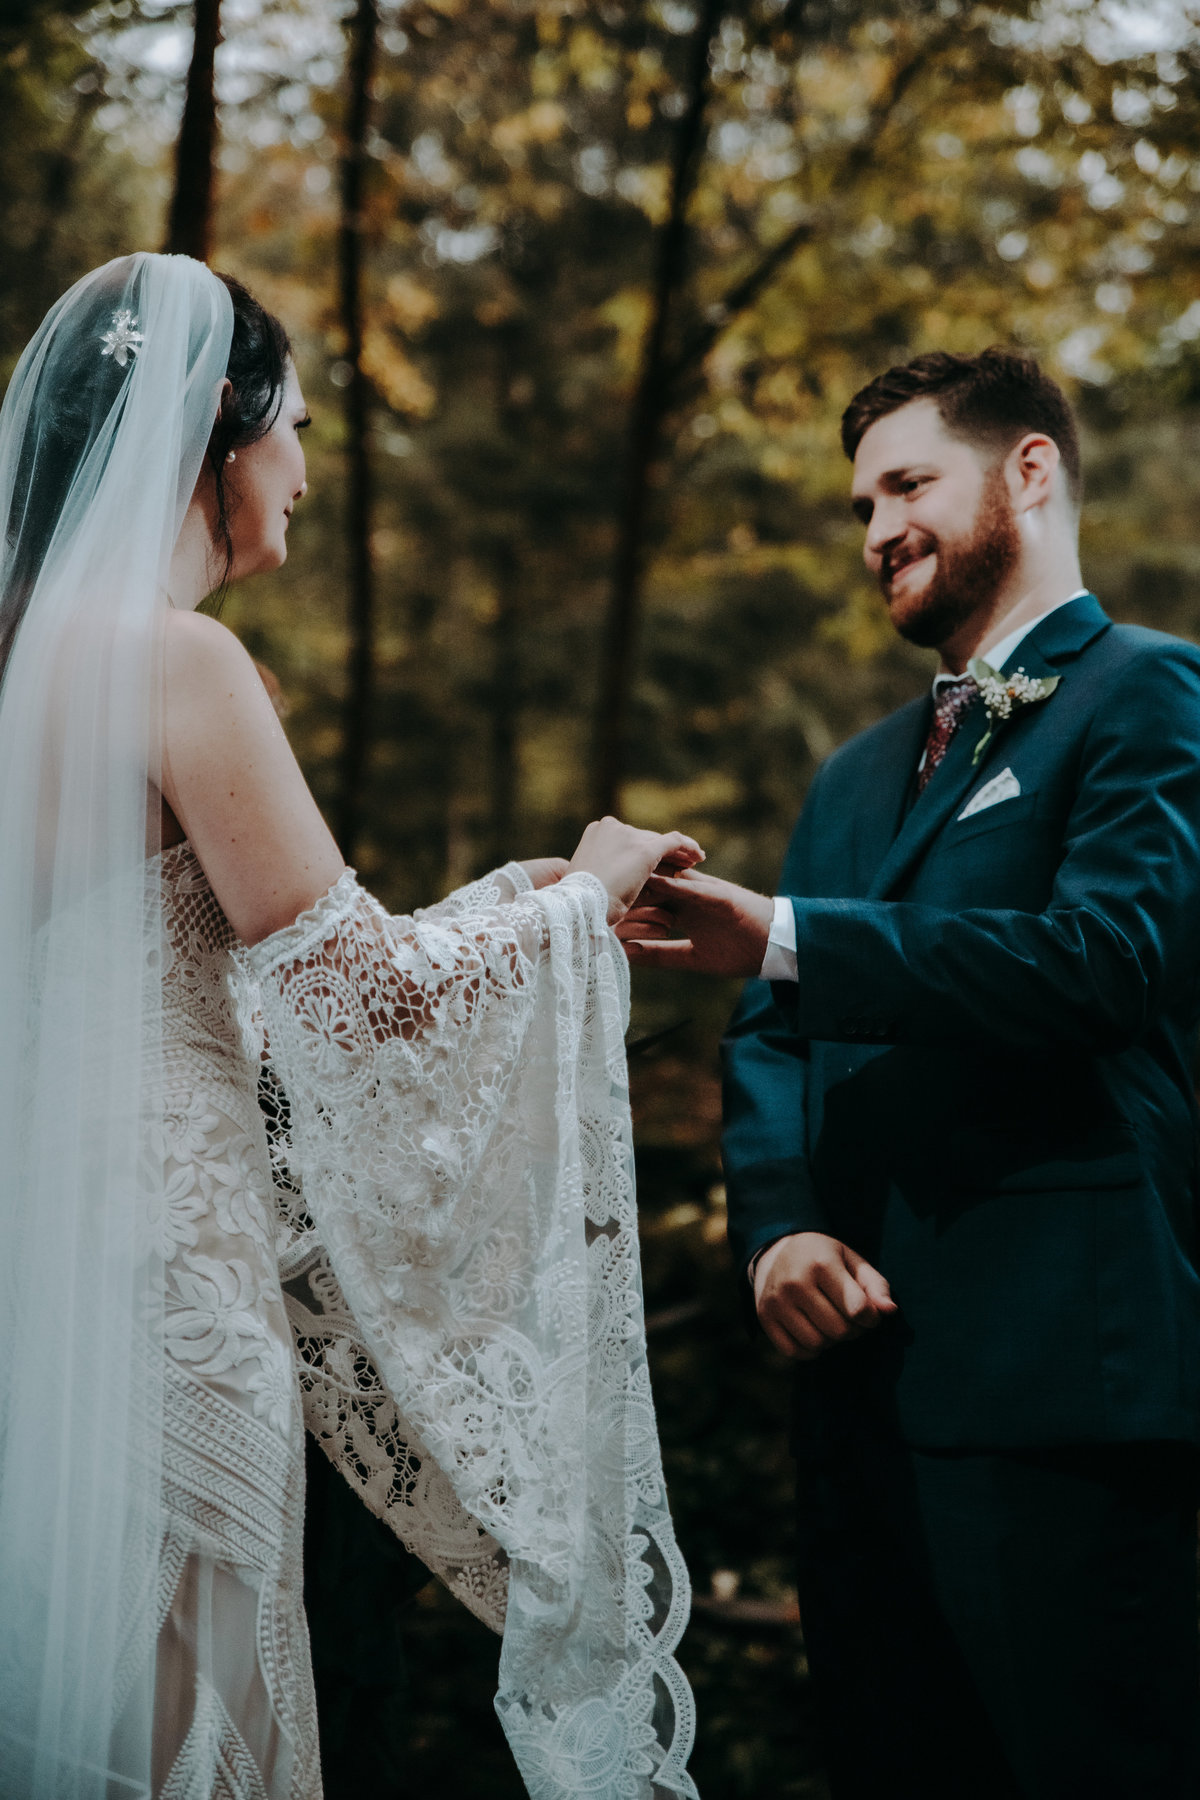 CatskillsJulietandEric2019WeddingPhotography (95 of 213)